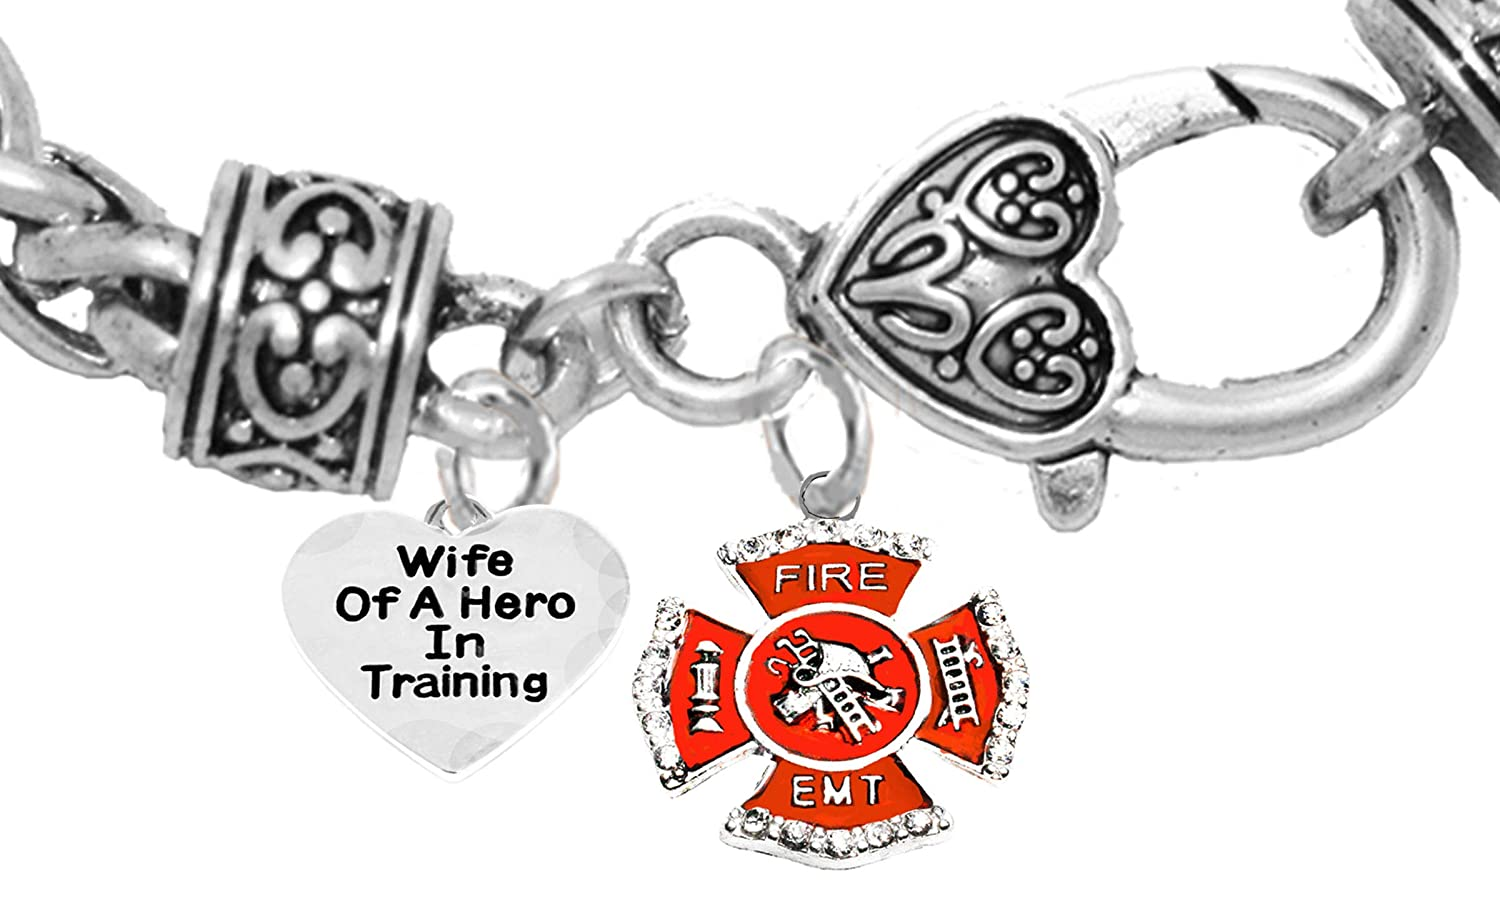 Firefighter,Wife of A Hero in Training Fire Department Charm On A Antique Wheat Chain Bracelet Lead and Cadmium Free Cardinali Jewelry EMT Hypoallergenic Safe-Nickel